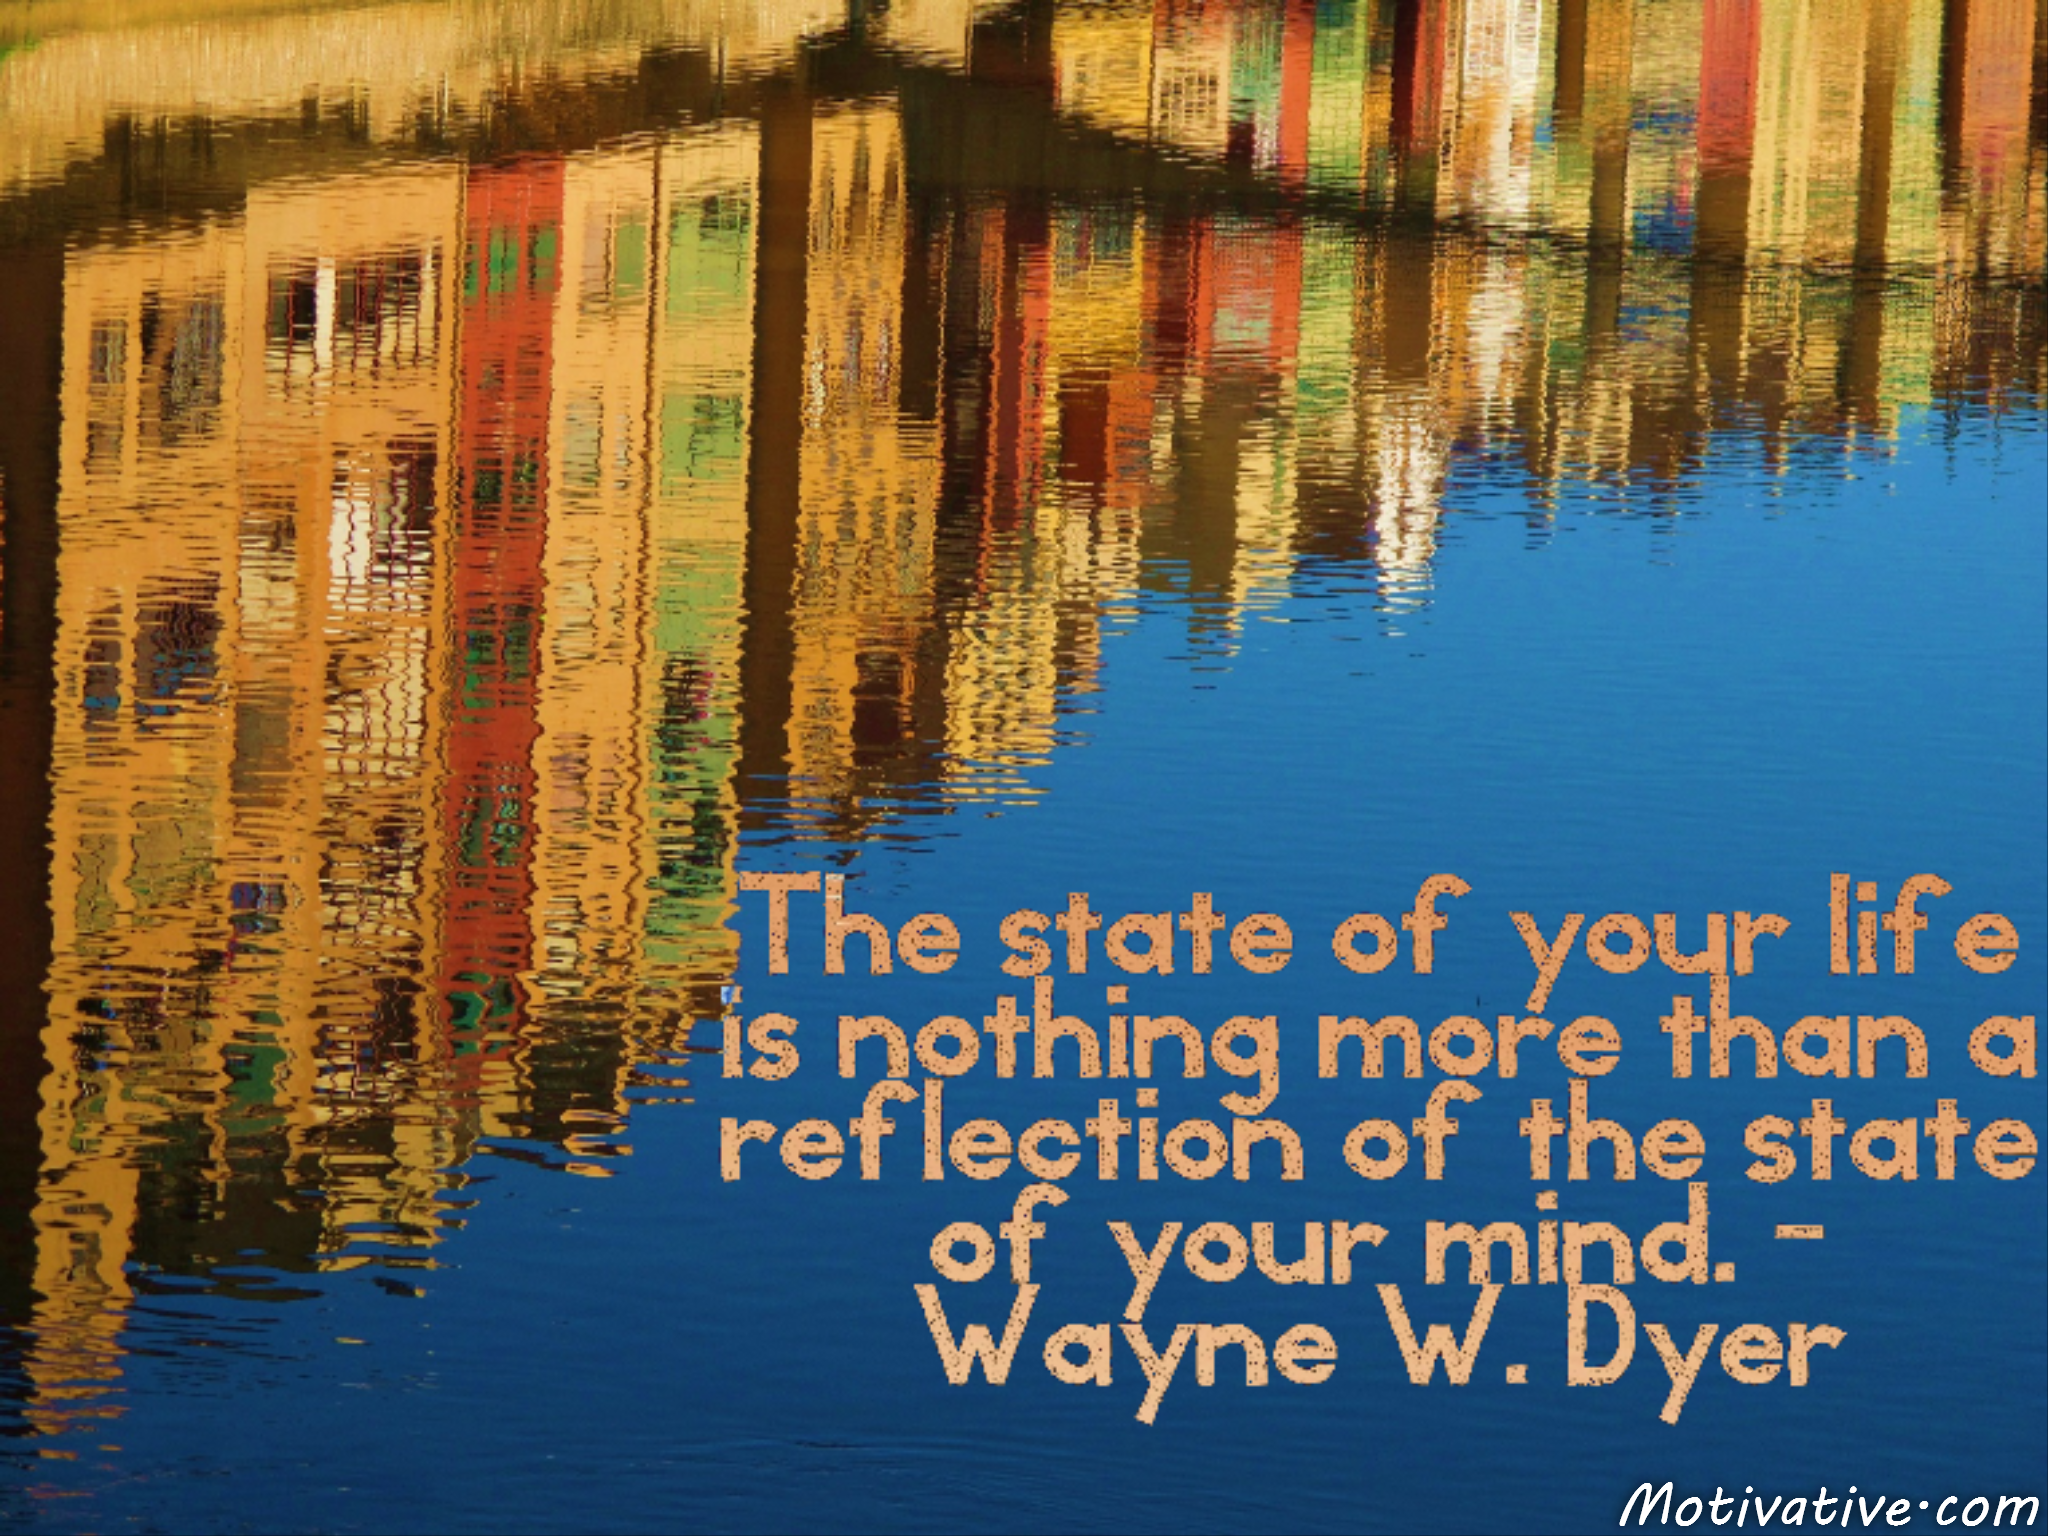 The state of your life is nothing more than a reflection of the state of your mind. – Wayne W. Dyer